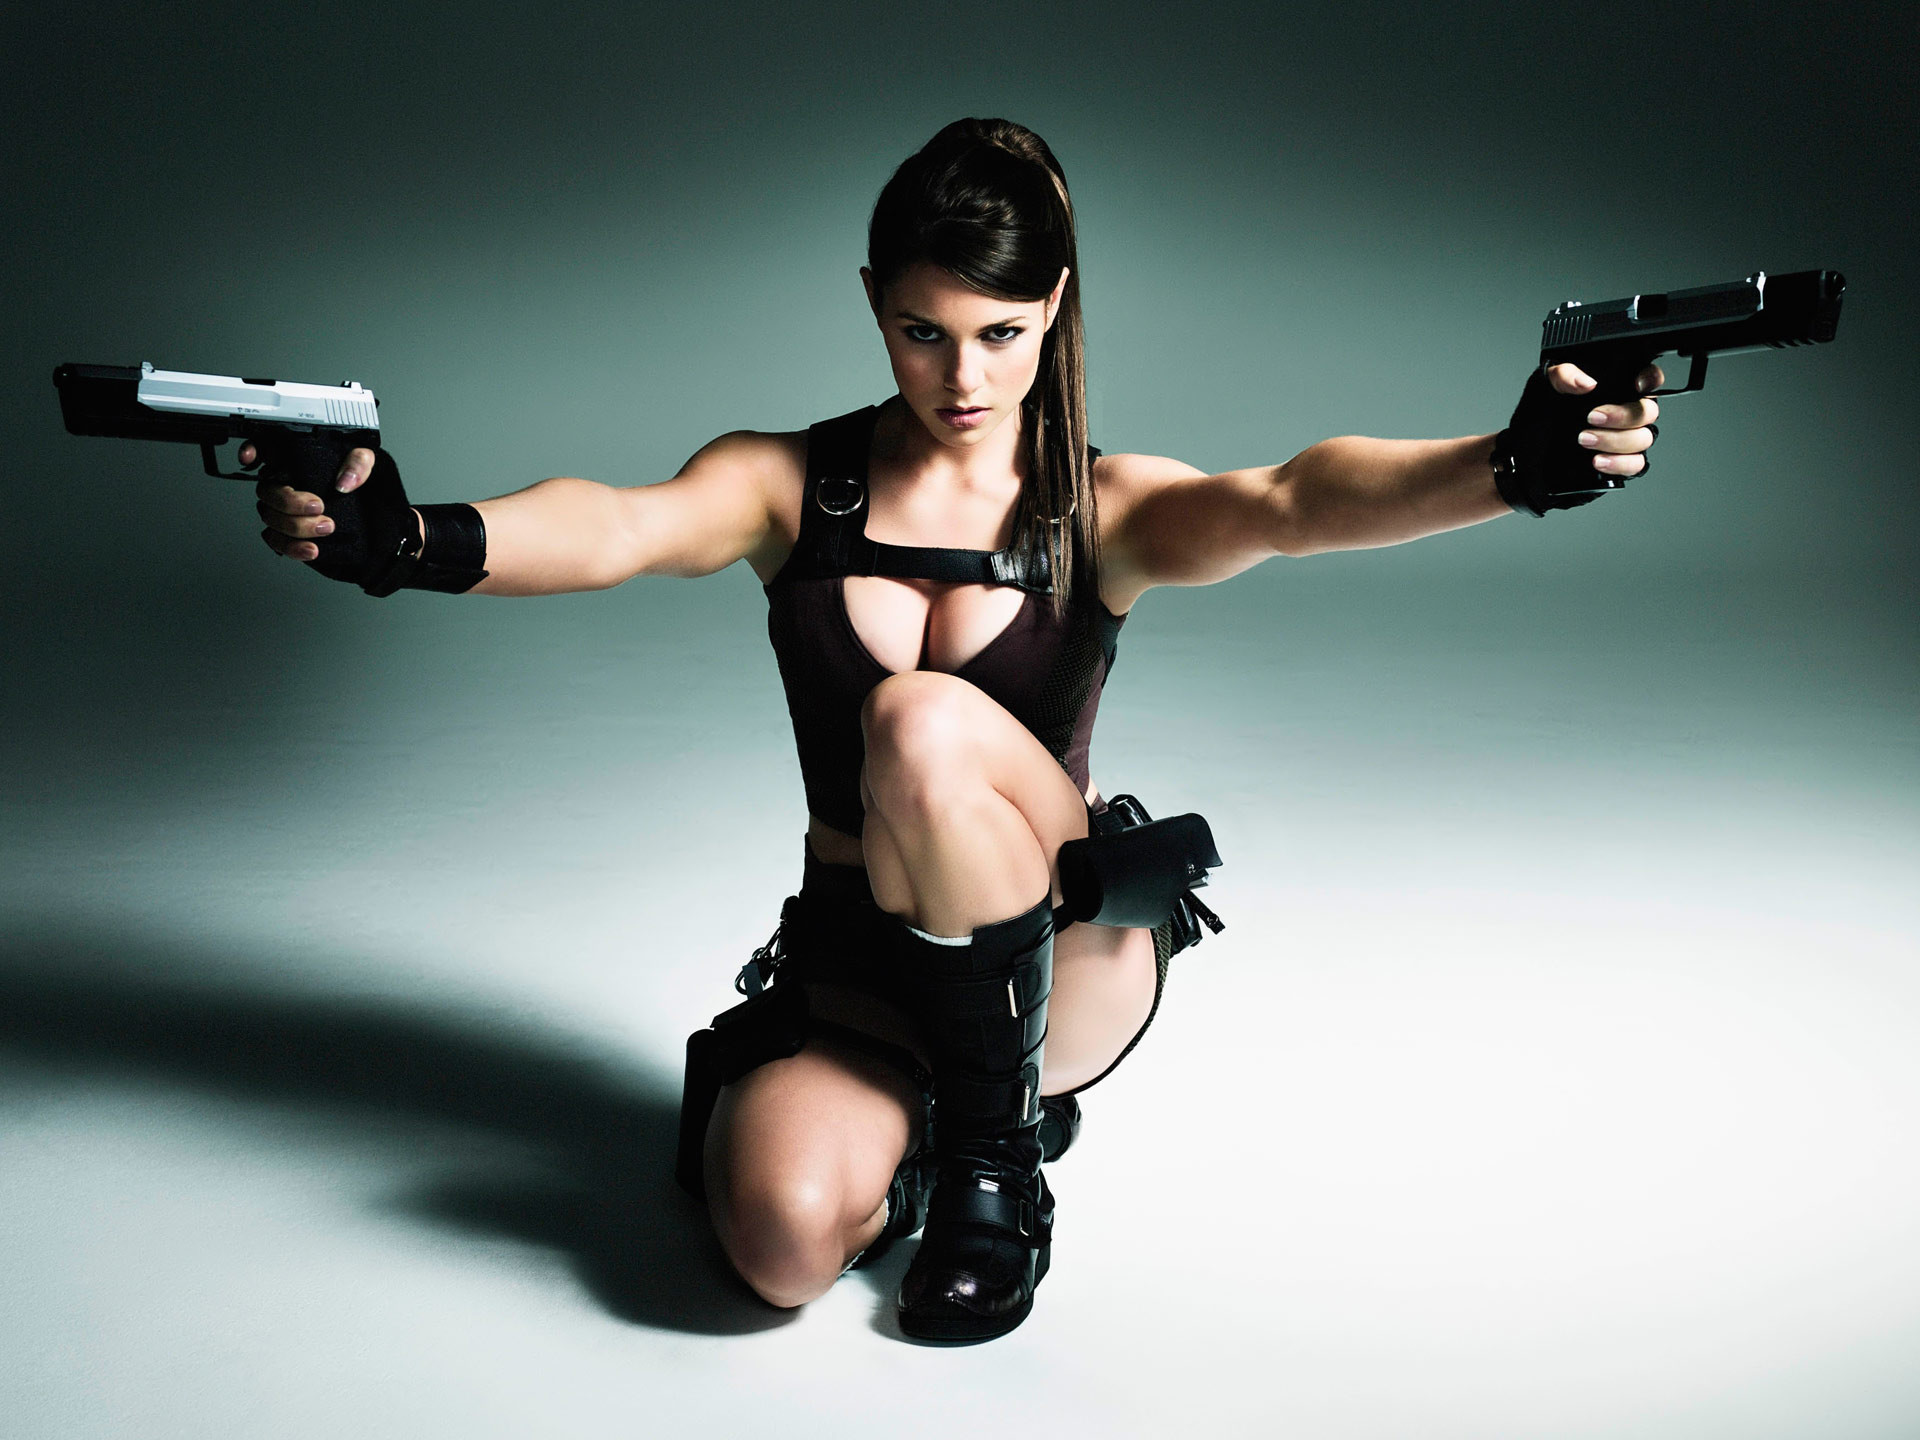 1920x1440 women guns cosplay tomb raider lara croft alison carroll wallpaper  of-PhotoBoats.Com